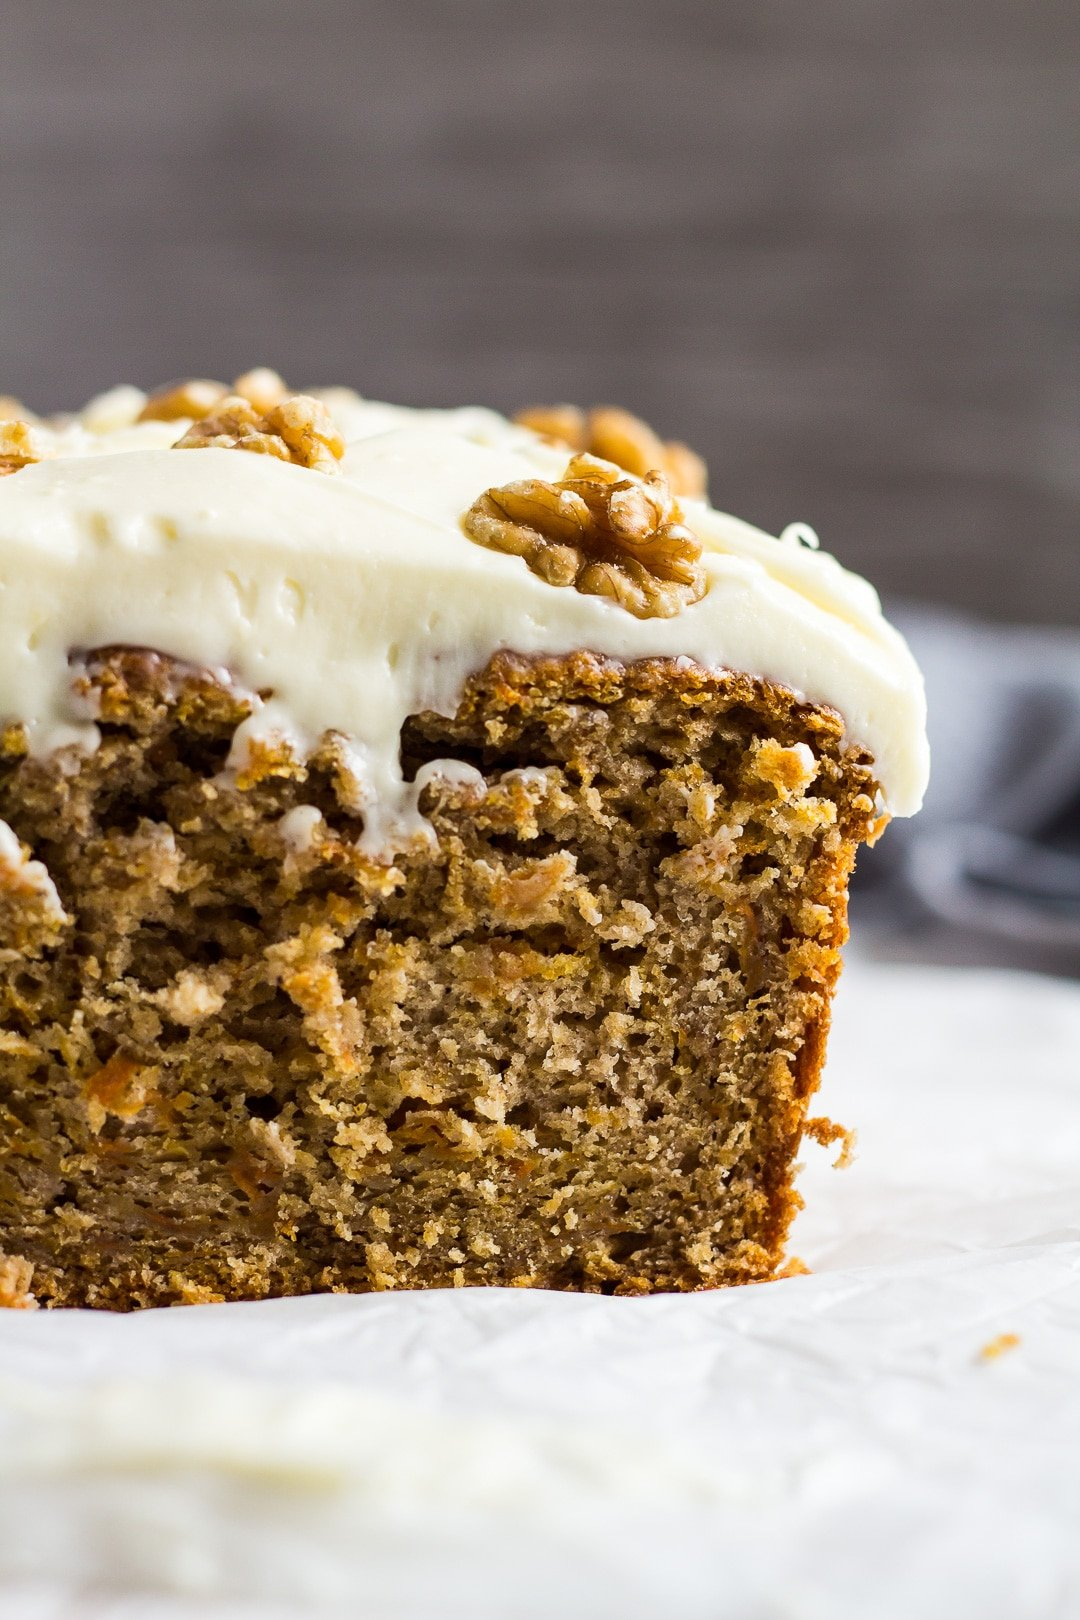 A close-up shot of half a Carrot Cake Loaf topped with a thick layer of cream cheese frosting.